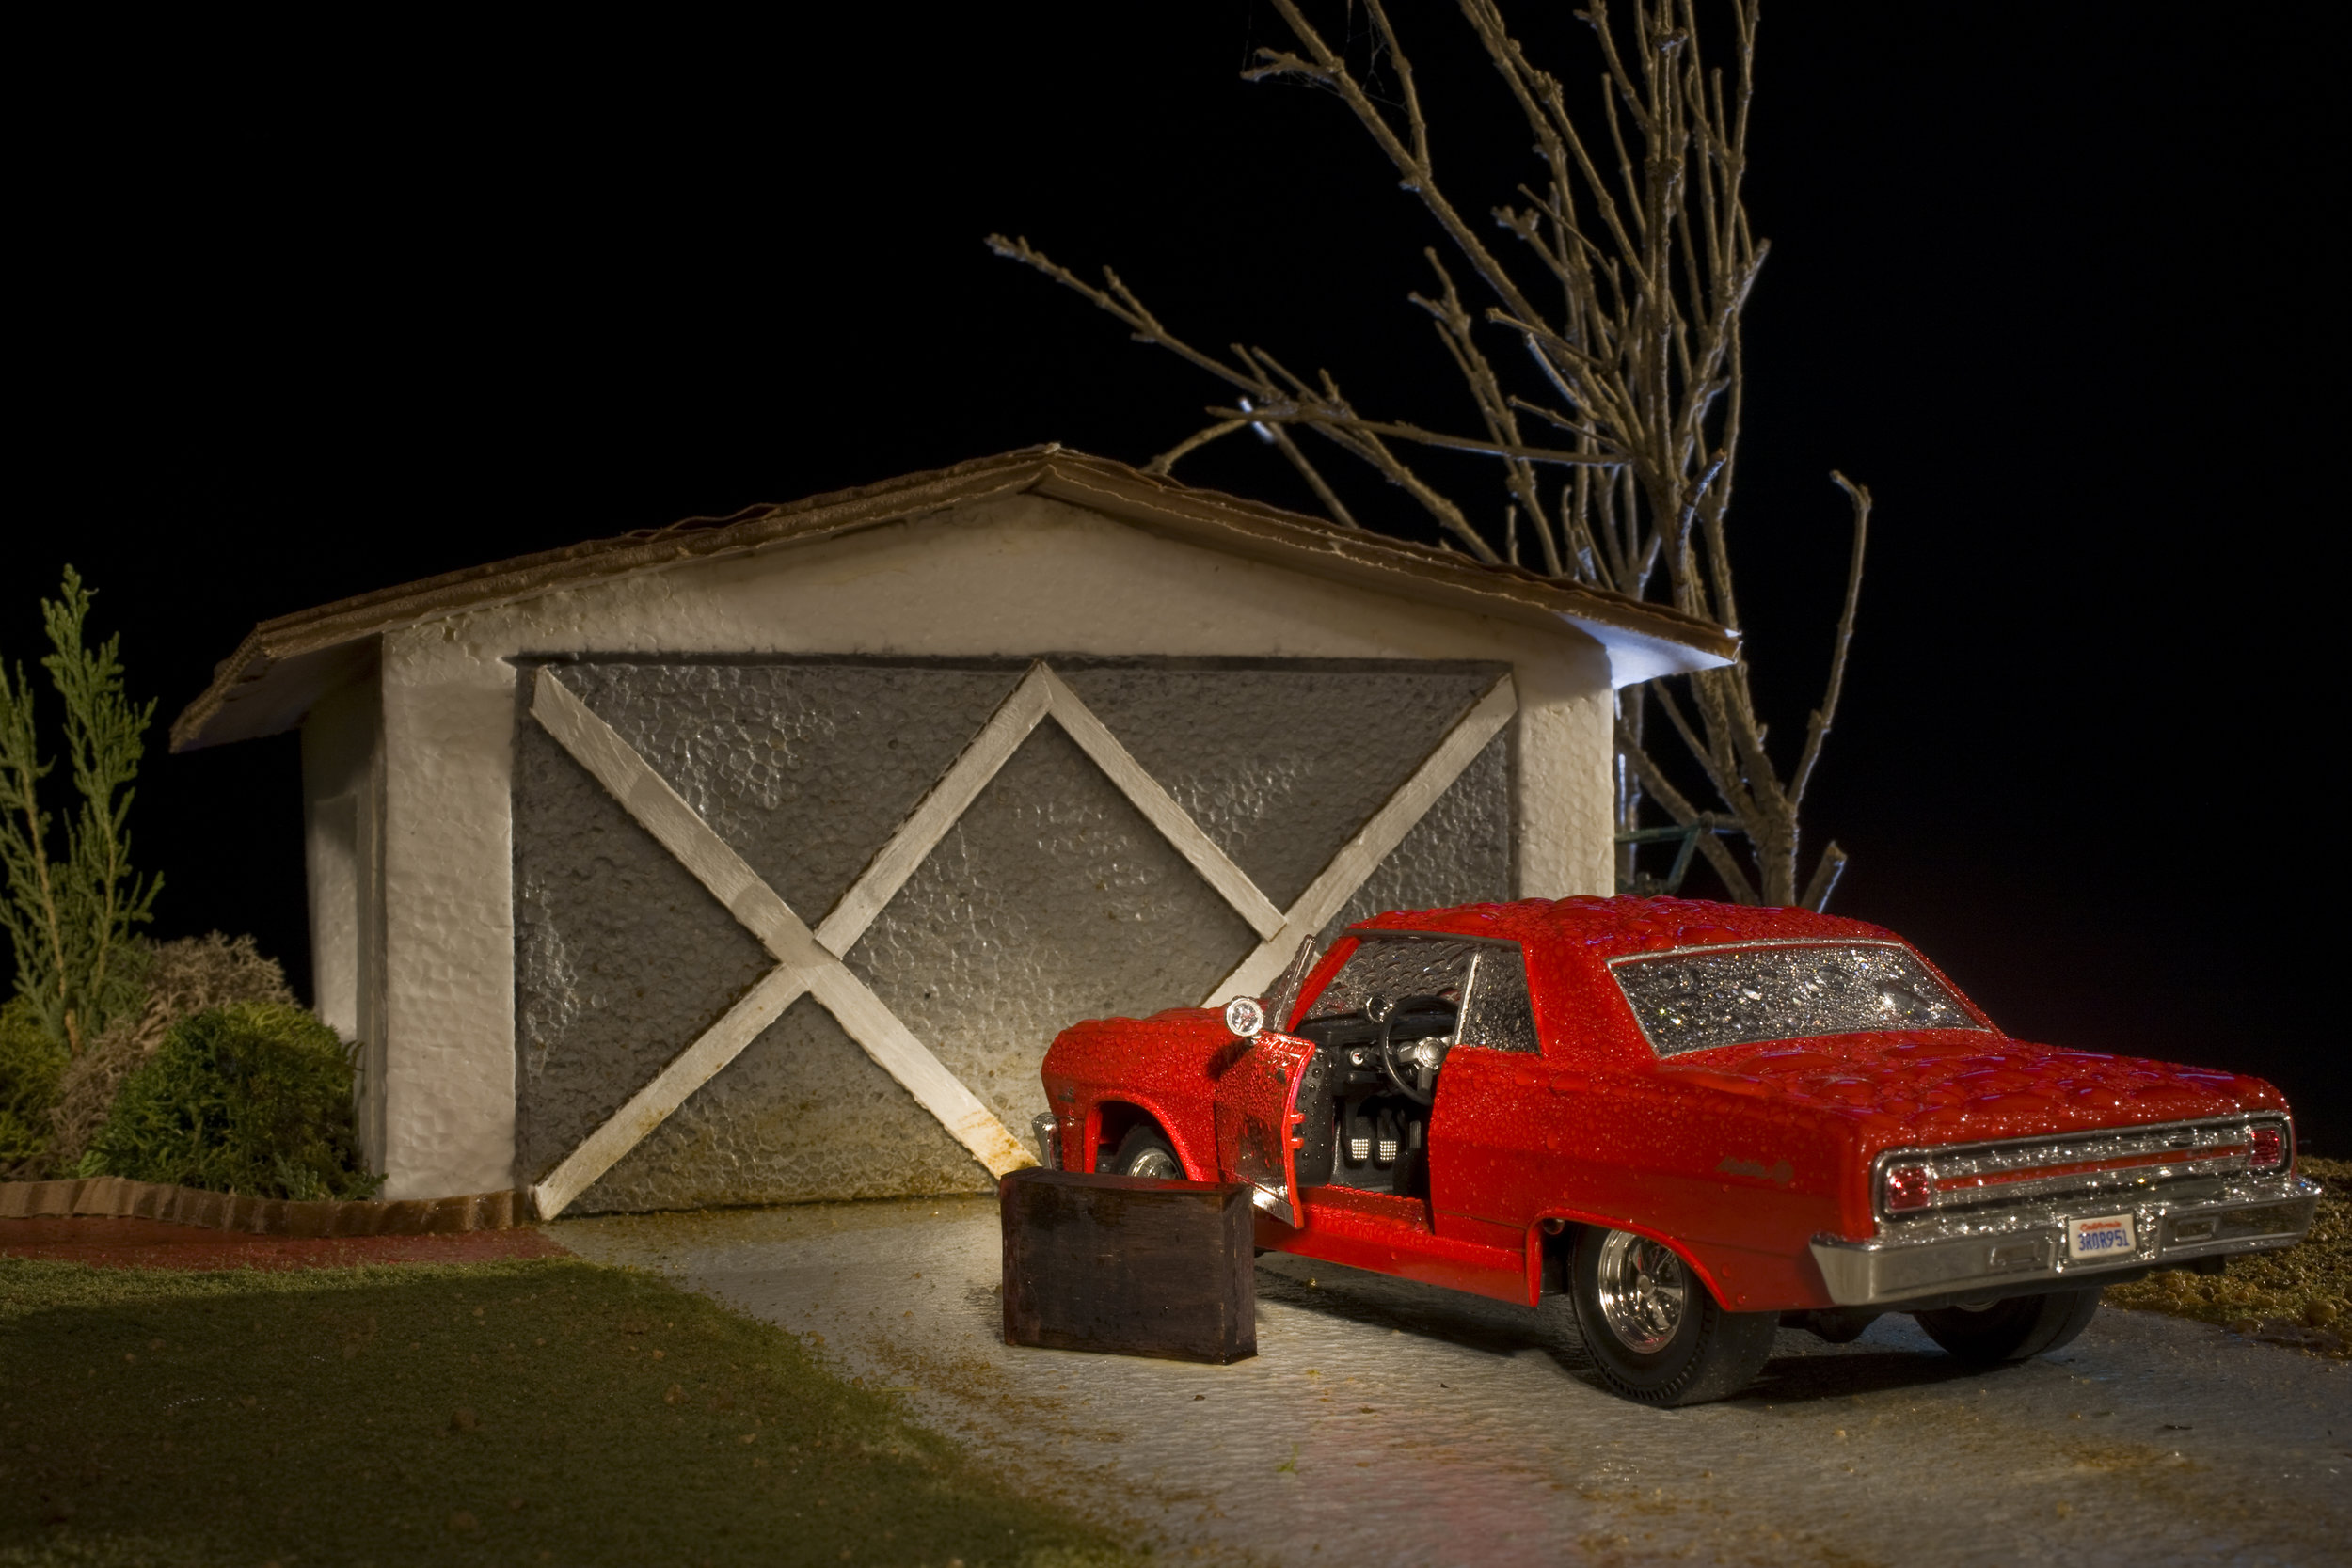 Tony Maher, The Day Dad Moved Out, 1986, from the series HiStory, 2010, Archival pigment print, 30 x 40 inches, Courtesy of the artist.